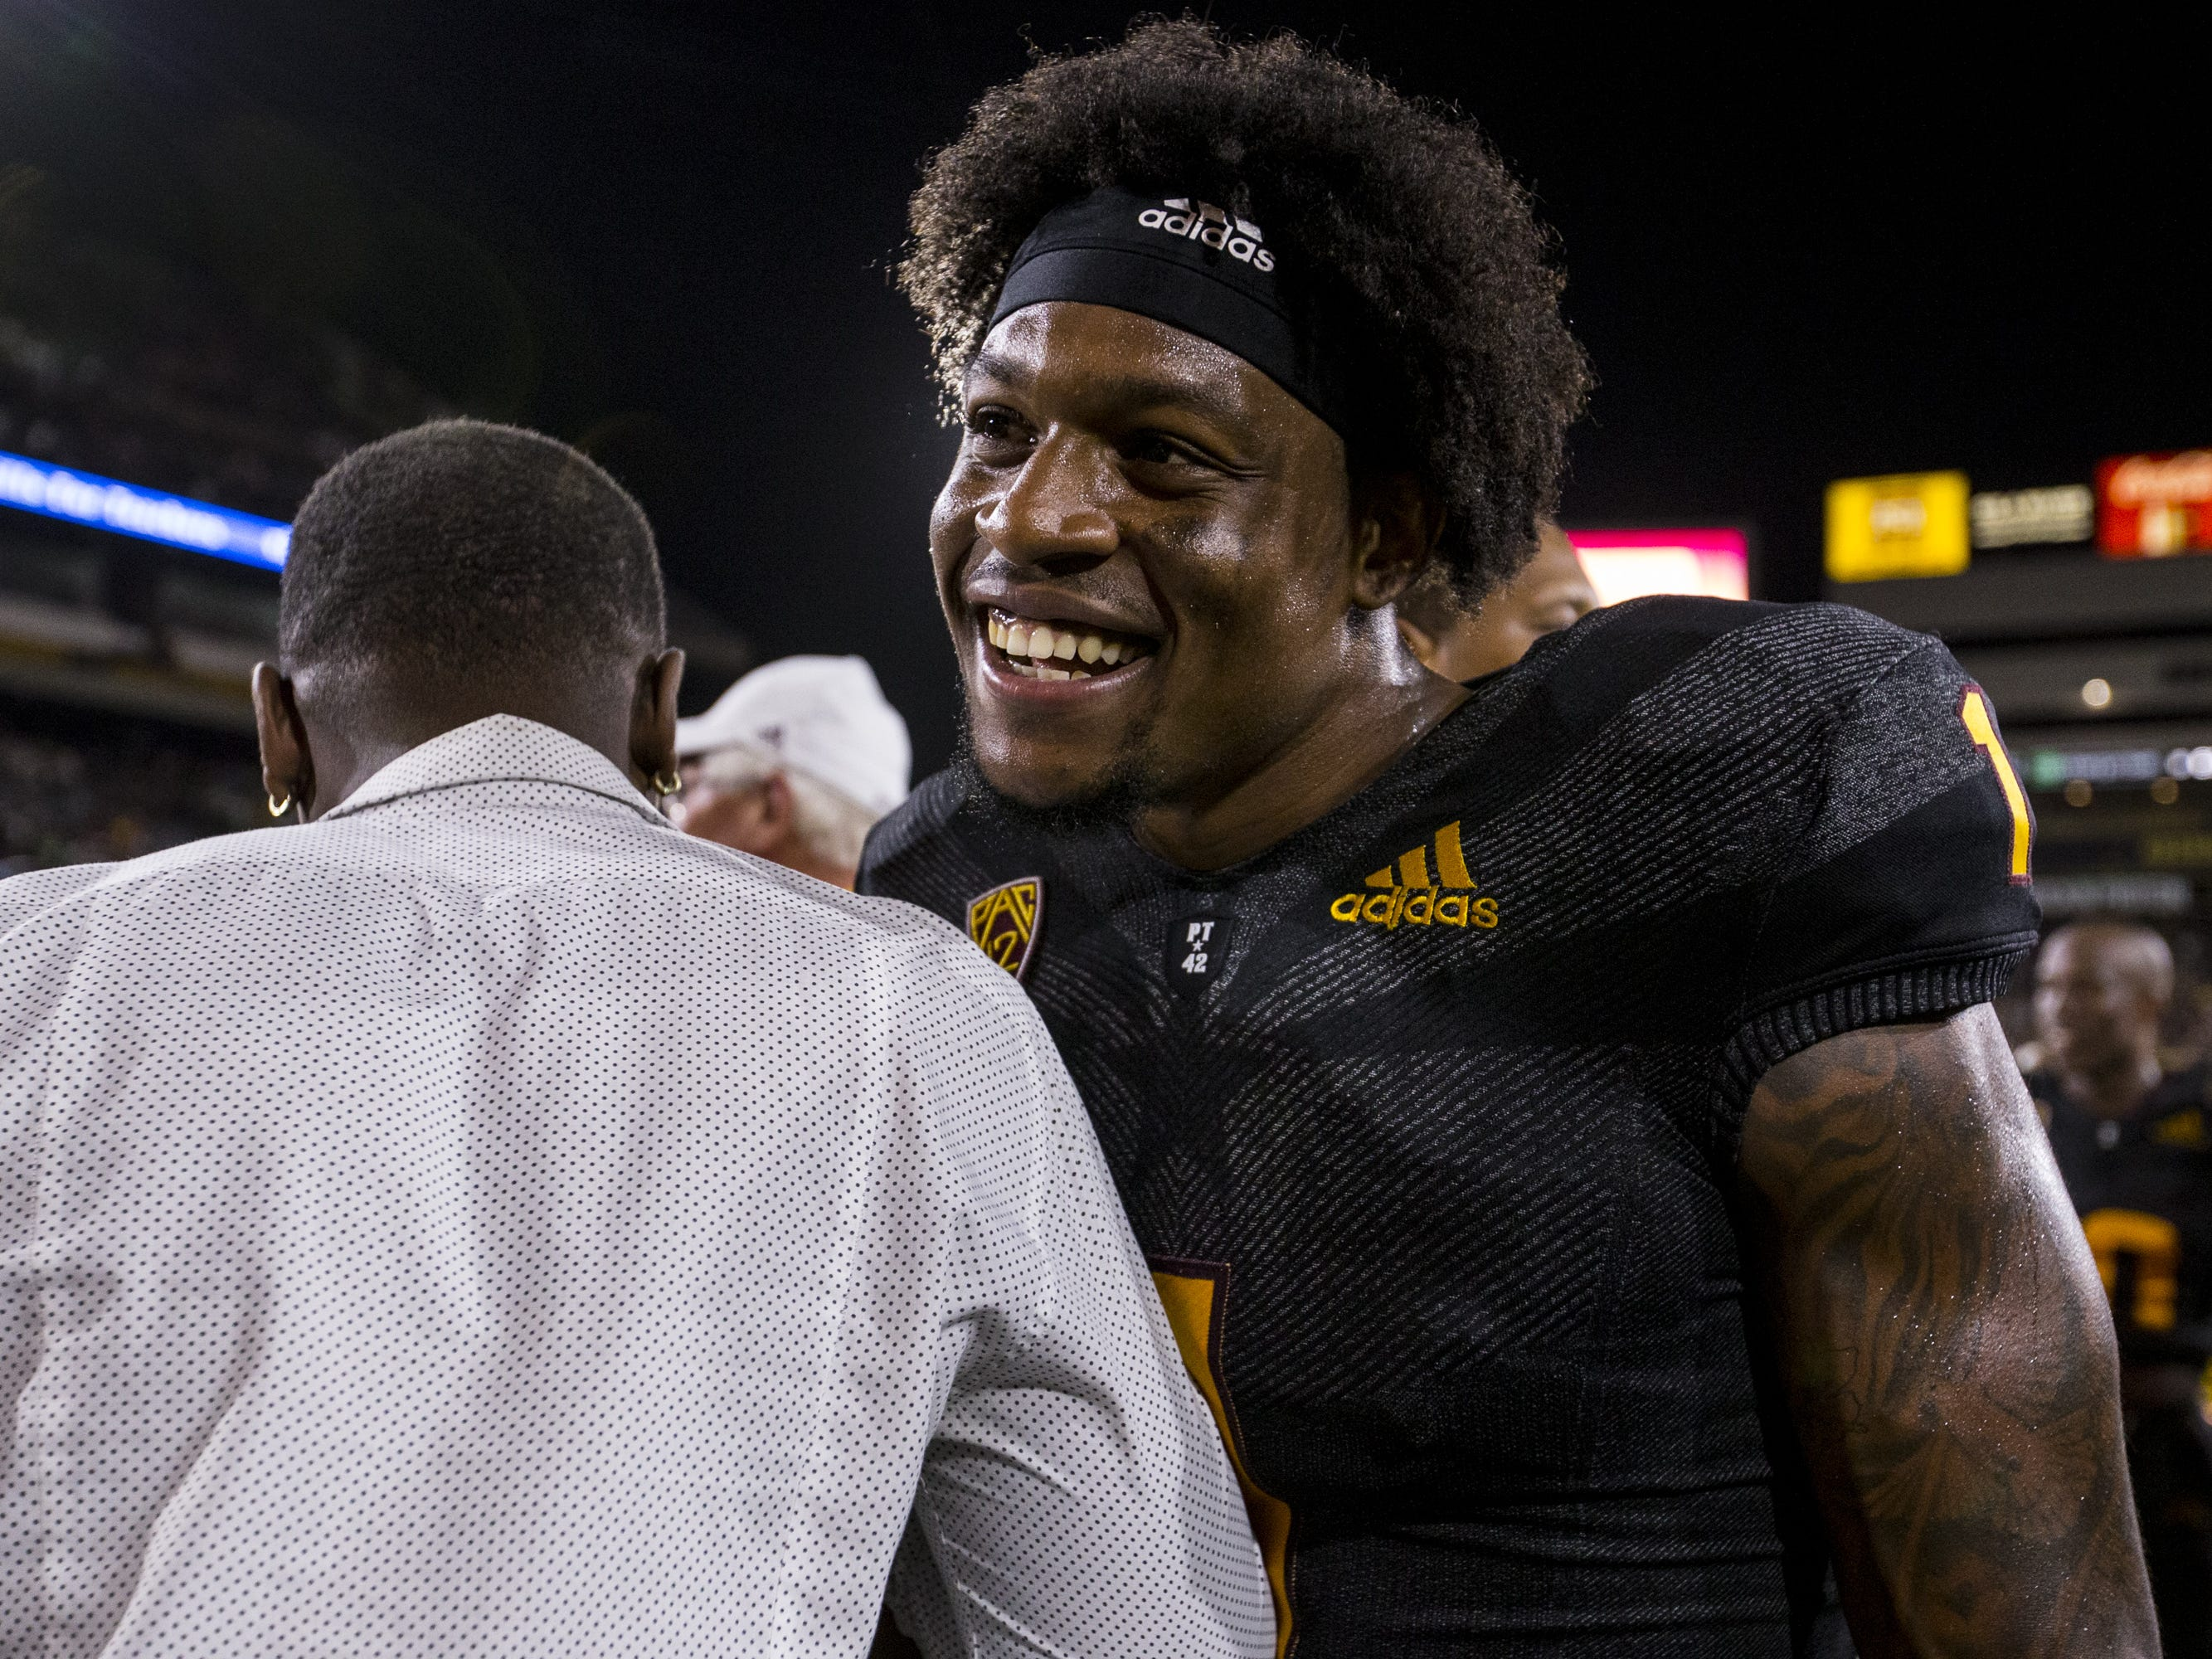 Arizona State's N'Keal Harry celebrates after defeating Michigan State on Saturday, Sept. 8, 2018, at Sun Devil Stadium in Tempe, Ariz. Arizona State won, 16-13.